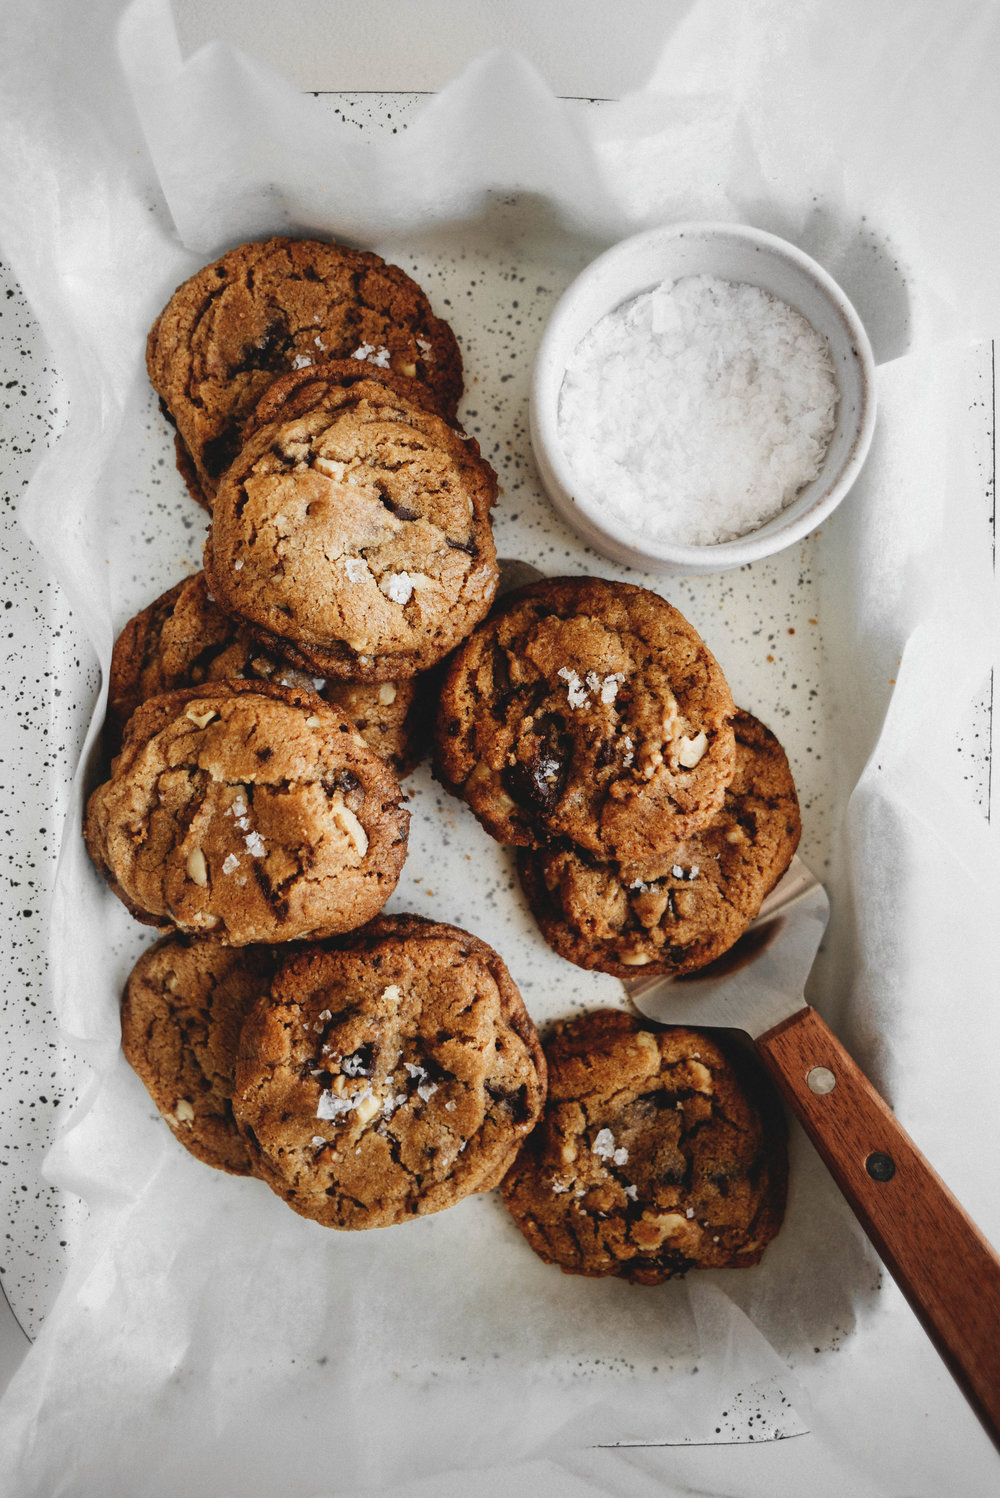 Vegan-Chocolate-Chip-Walnut-Cookies-9.jpg